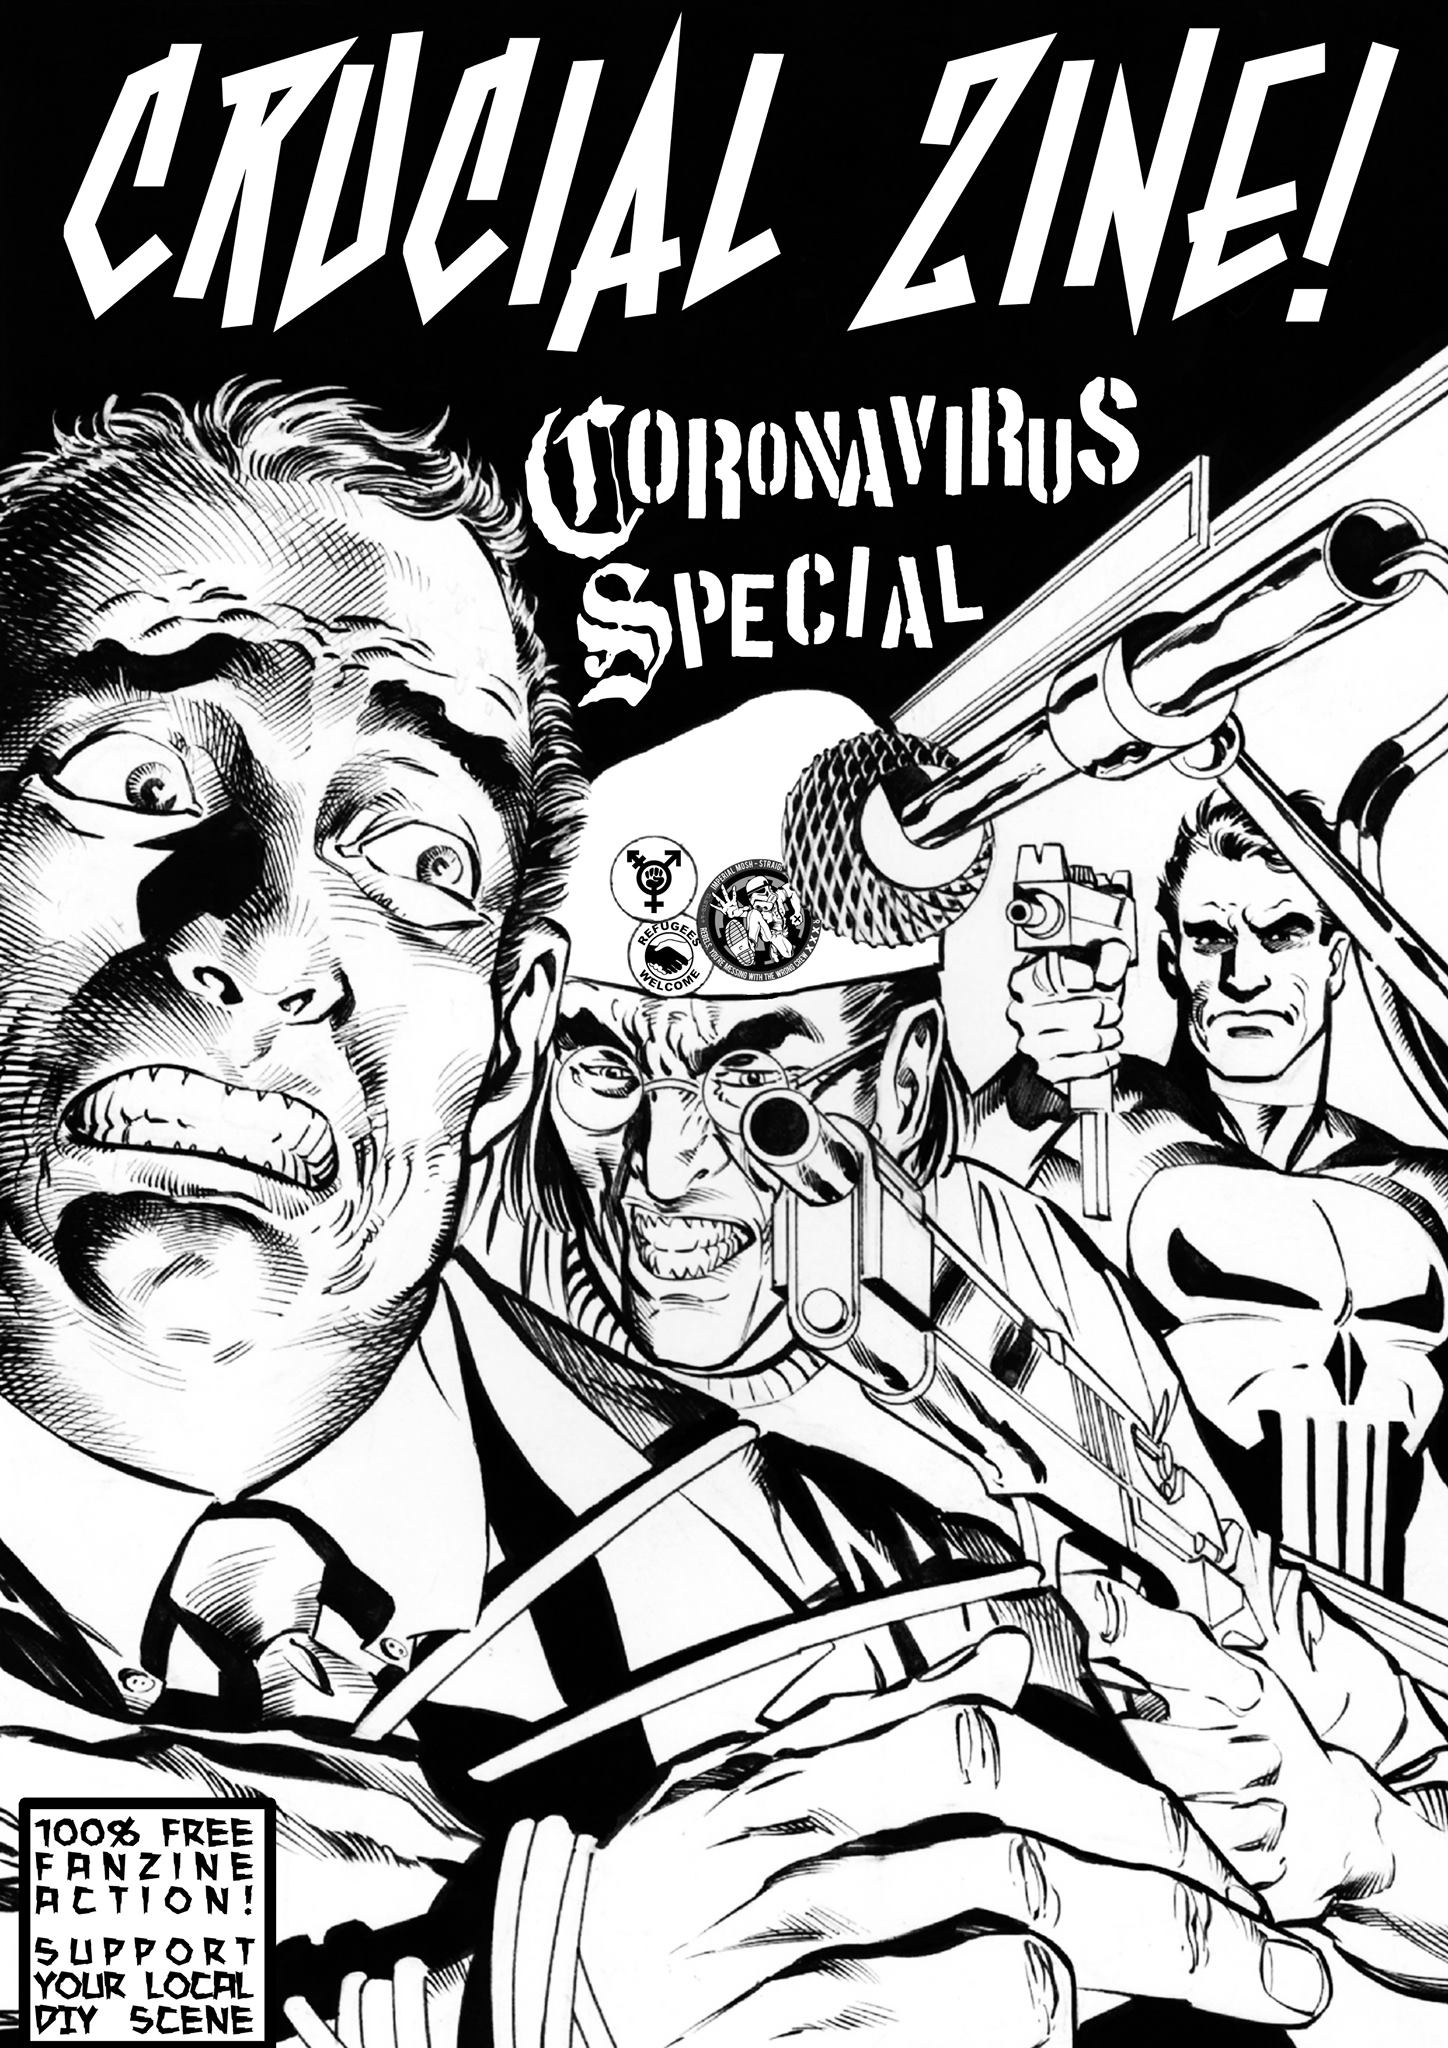 -sold out- Crucial Zine! corona virus special 1